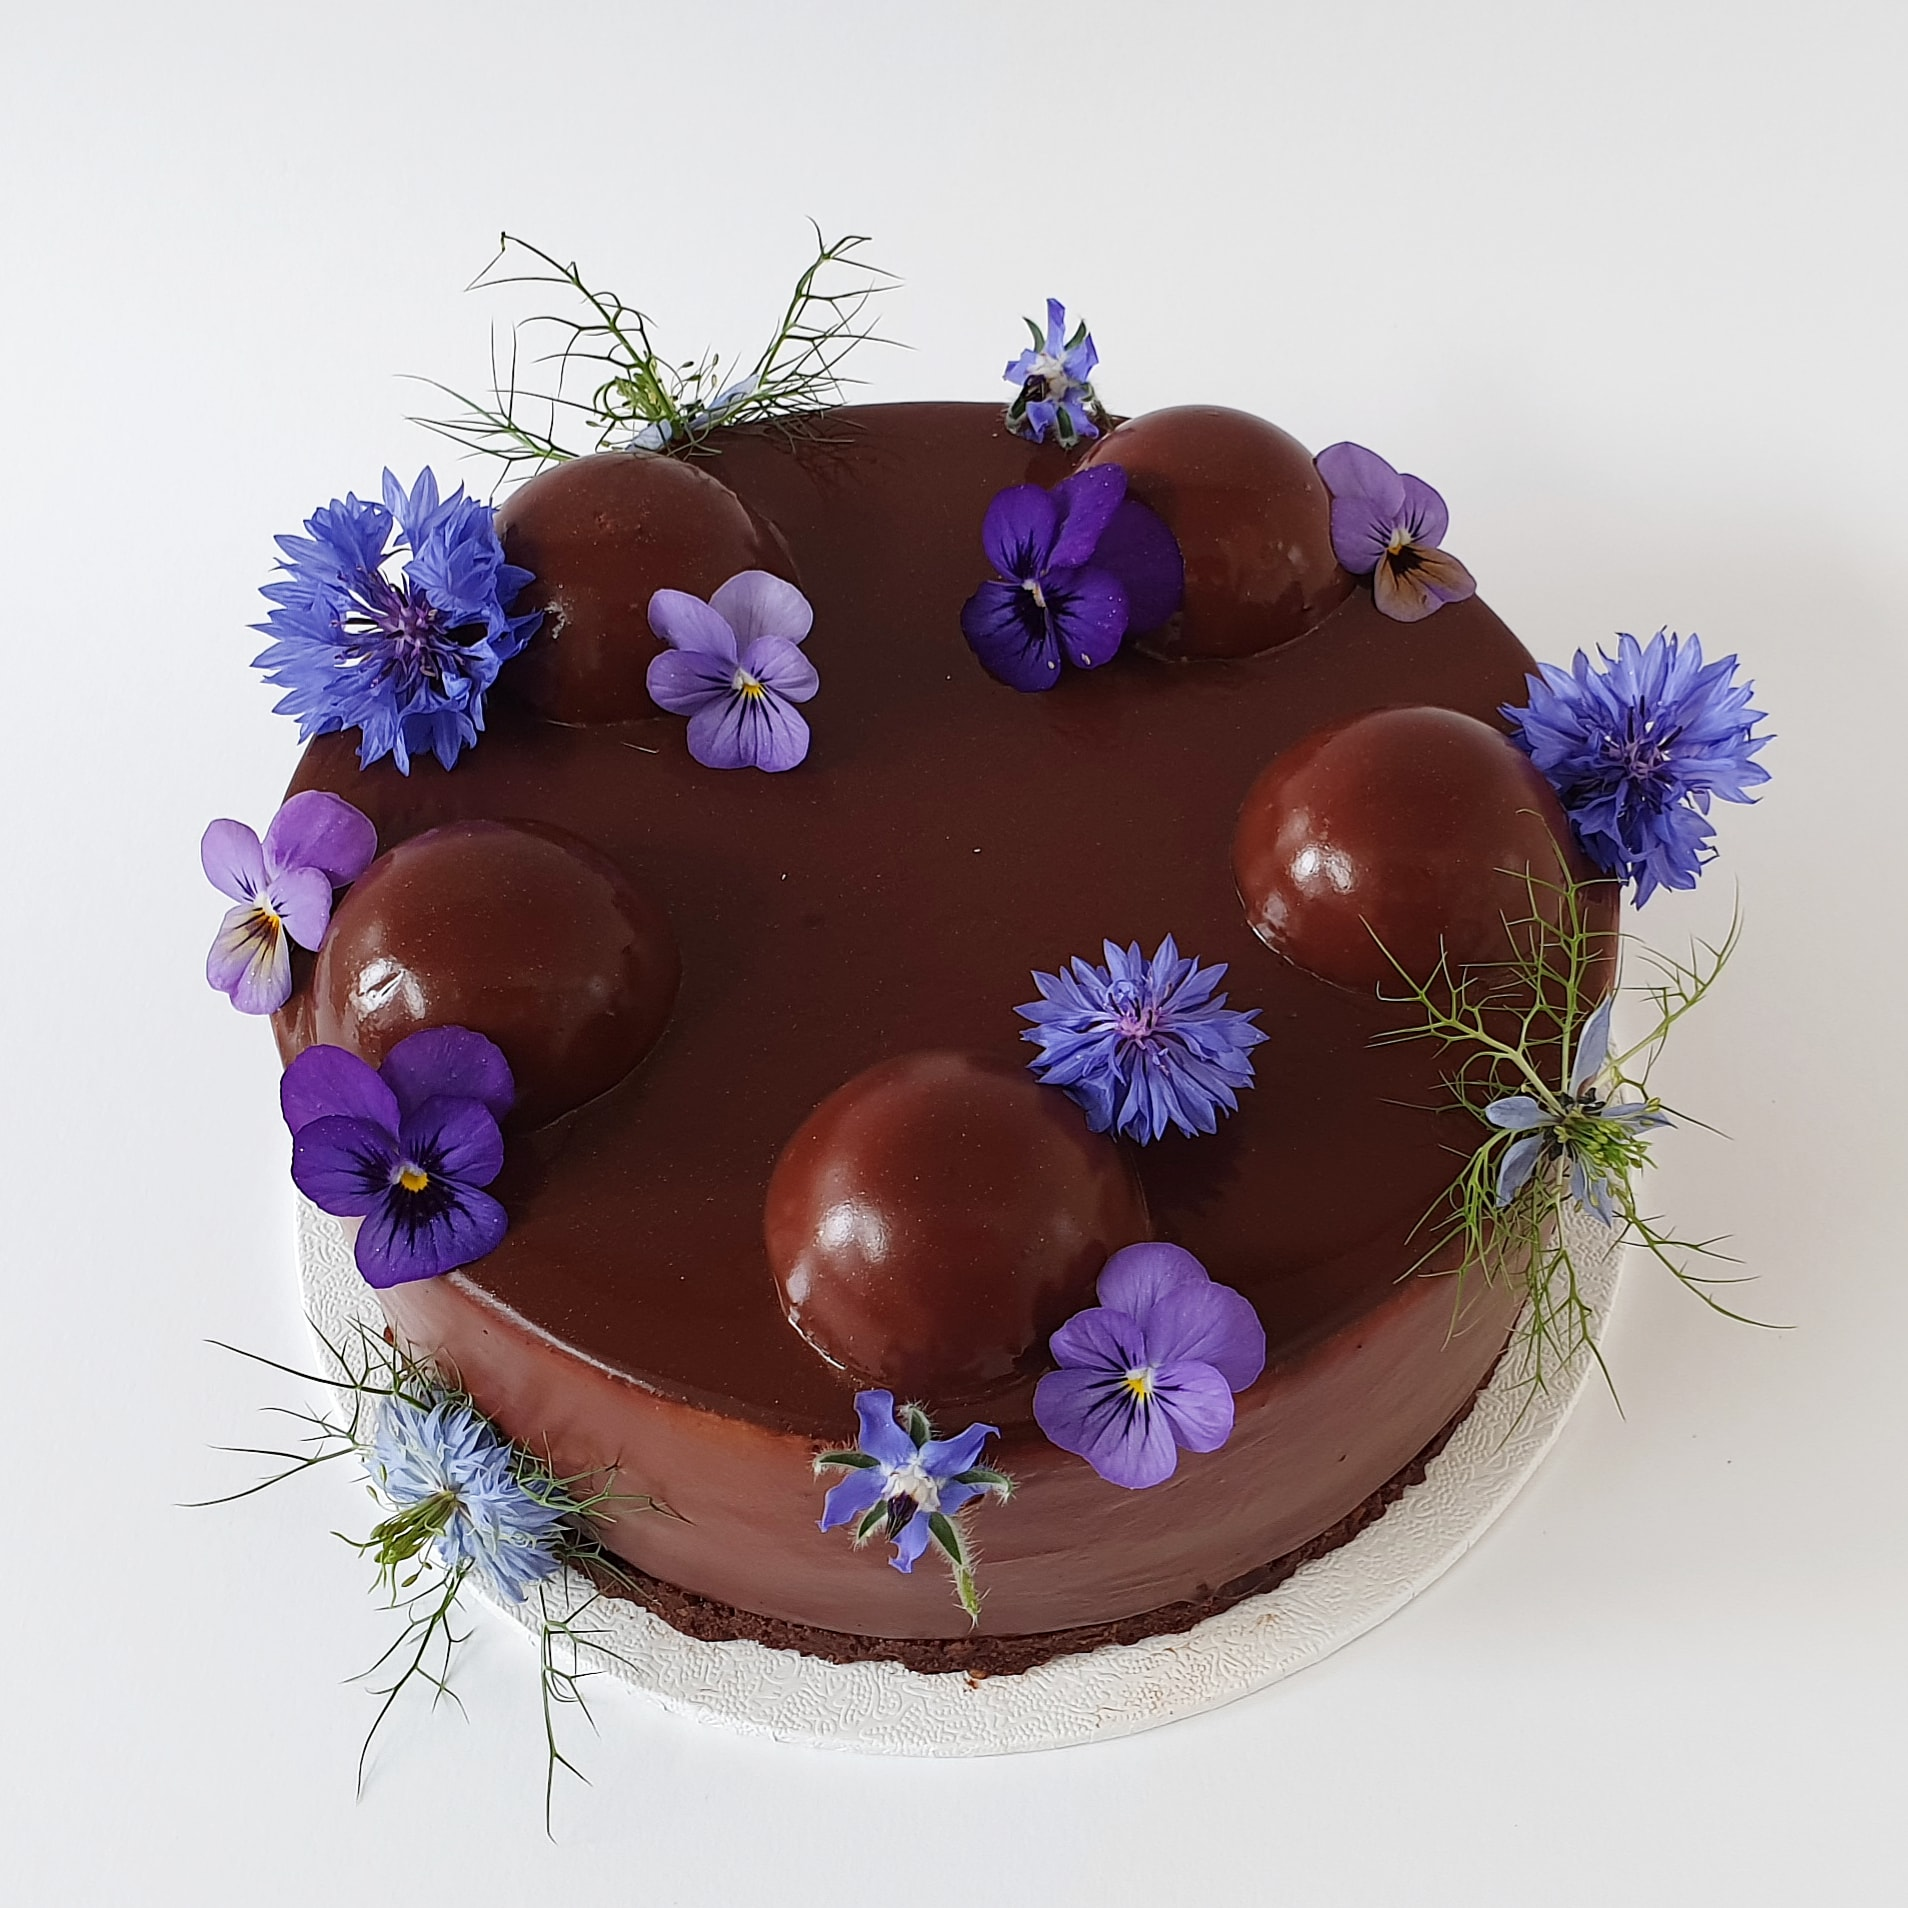 chocolate entremet with edible flowers